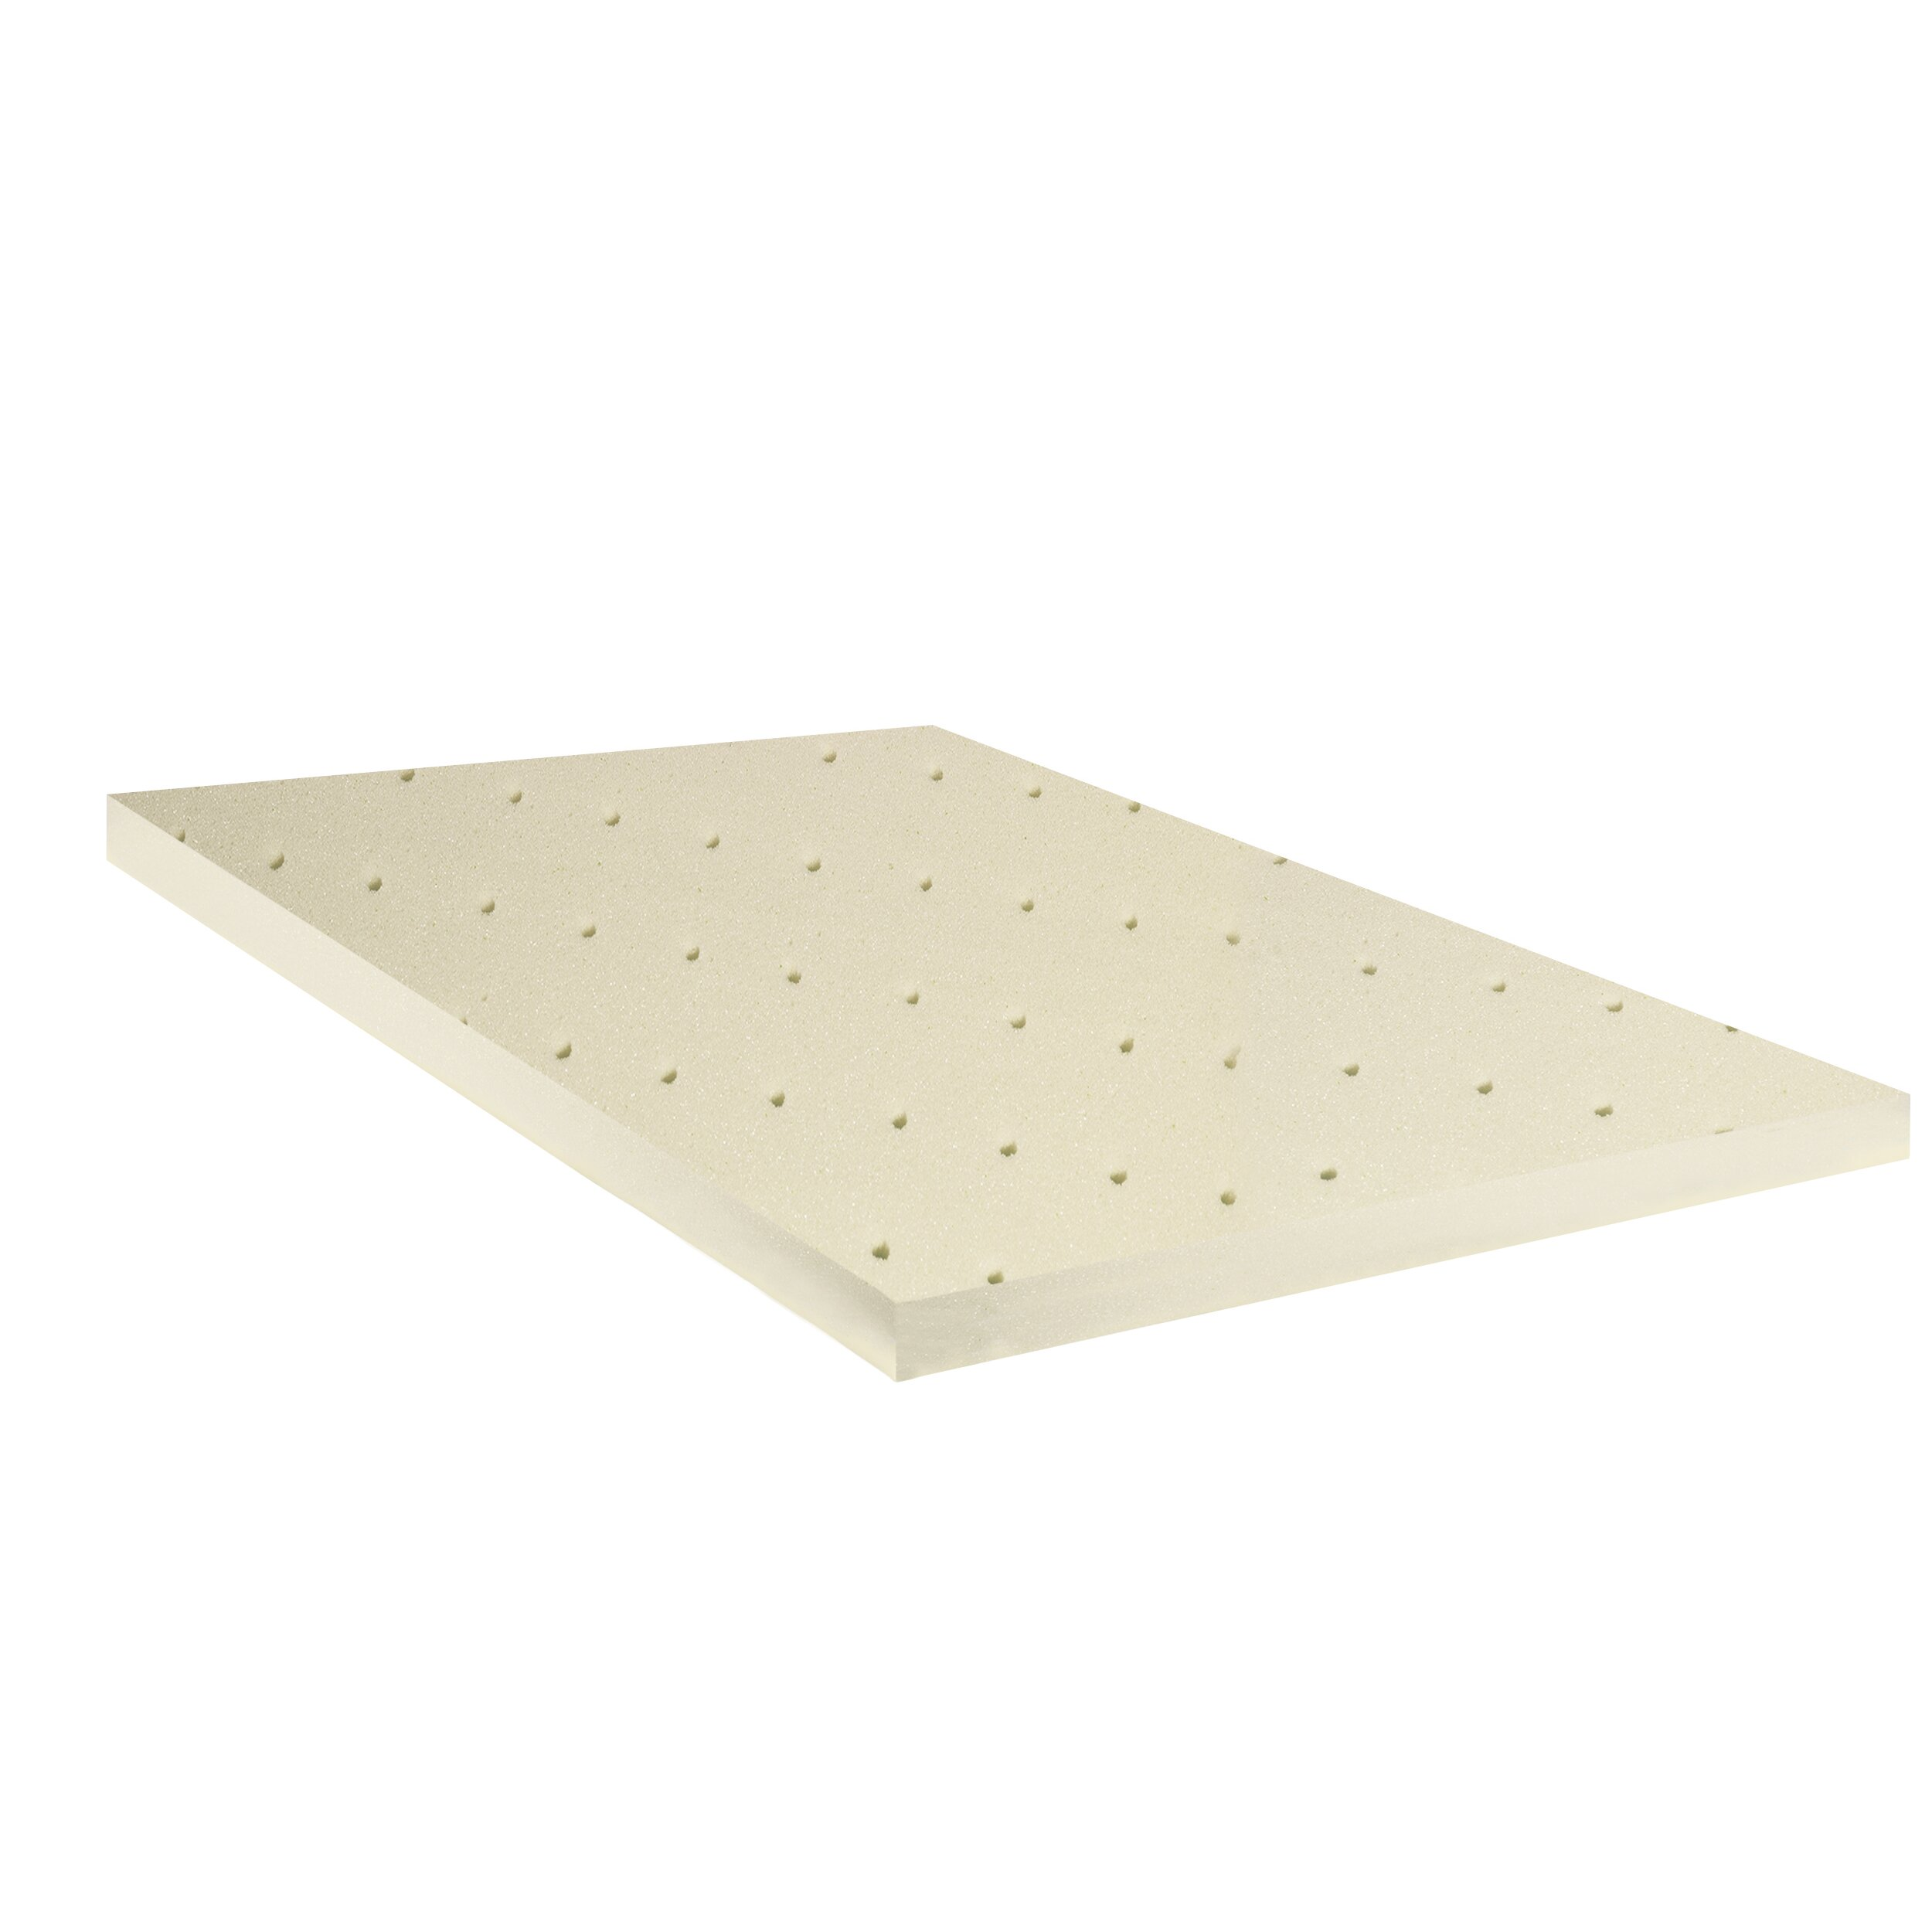 Spinal Solution High Density Foam Mattress Topper with